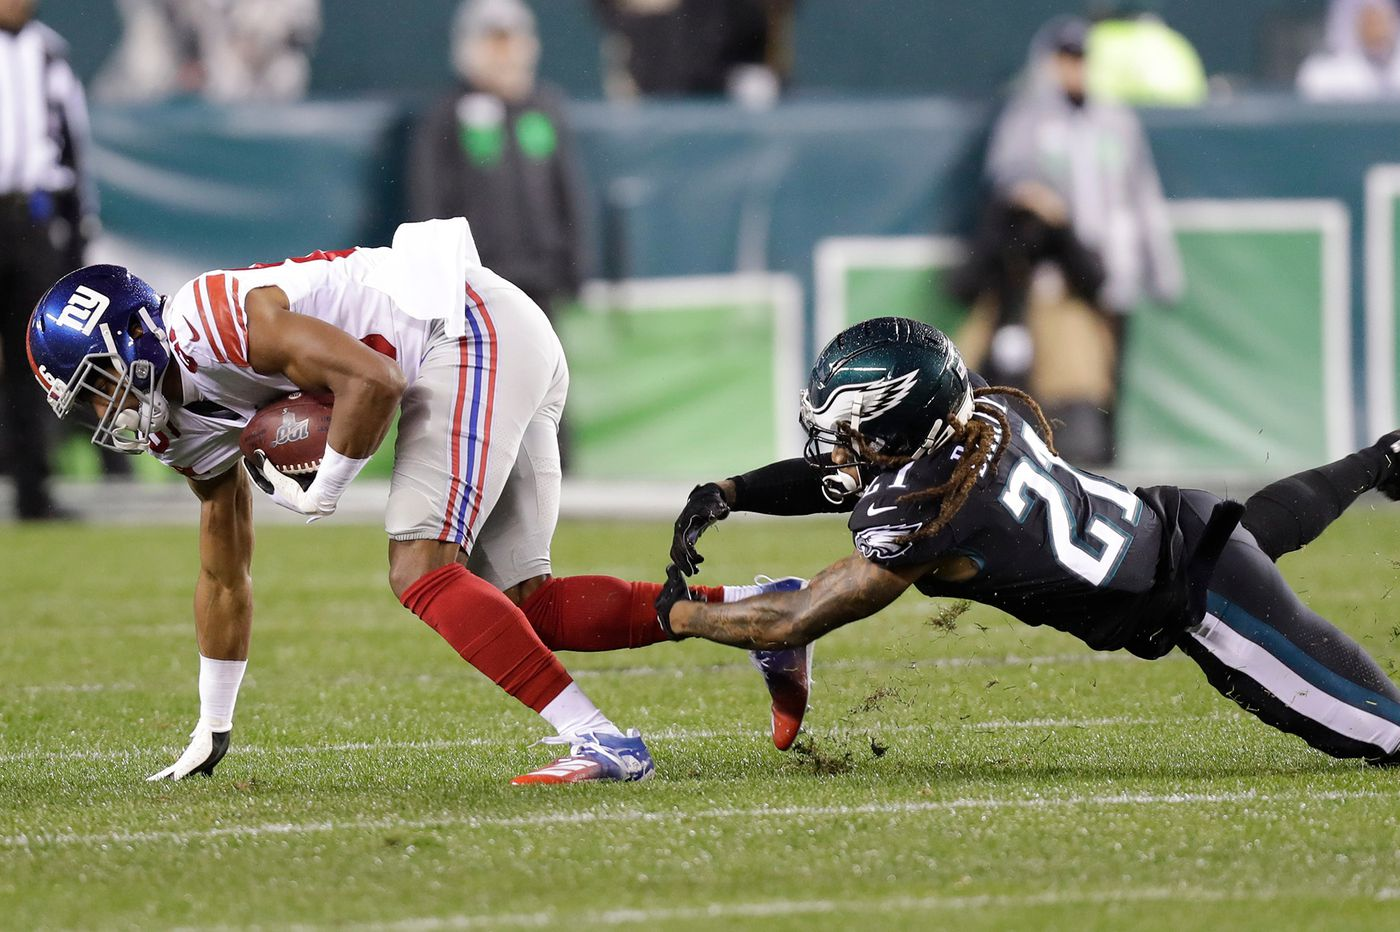 Eagles' talent problem at cornerback and wide receiver once again exposed | David Murphy